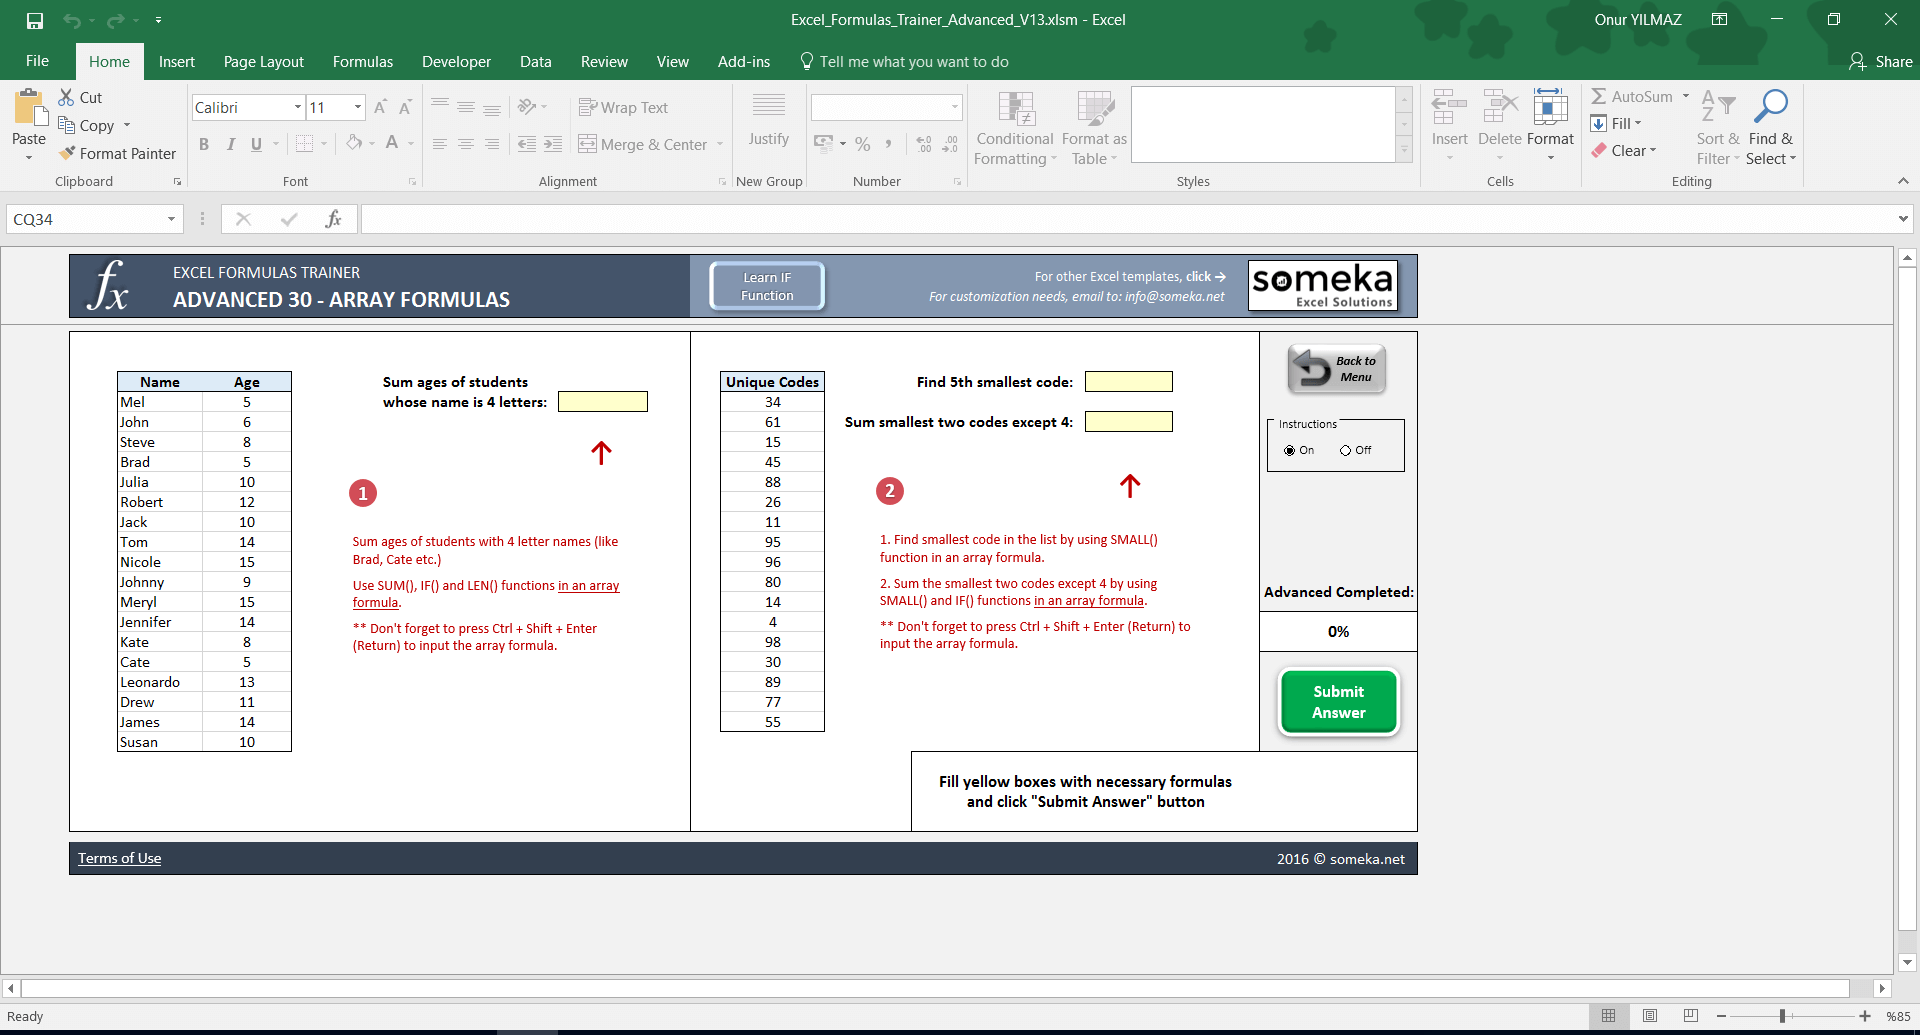 Excel Formulas Trainer - Advanced | Practice Workbook - Screenshot Image 4 - Someka